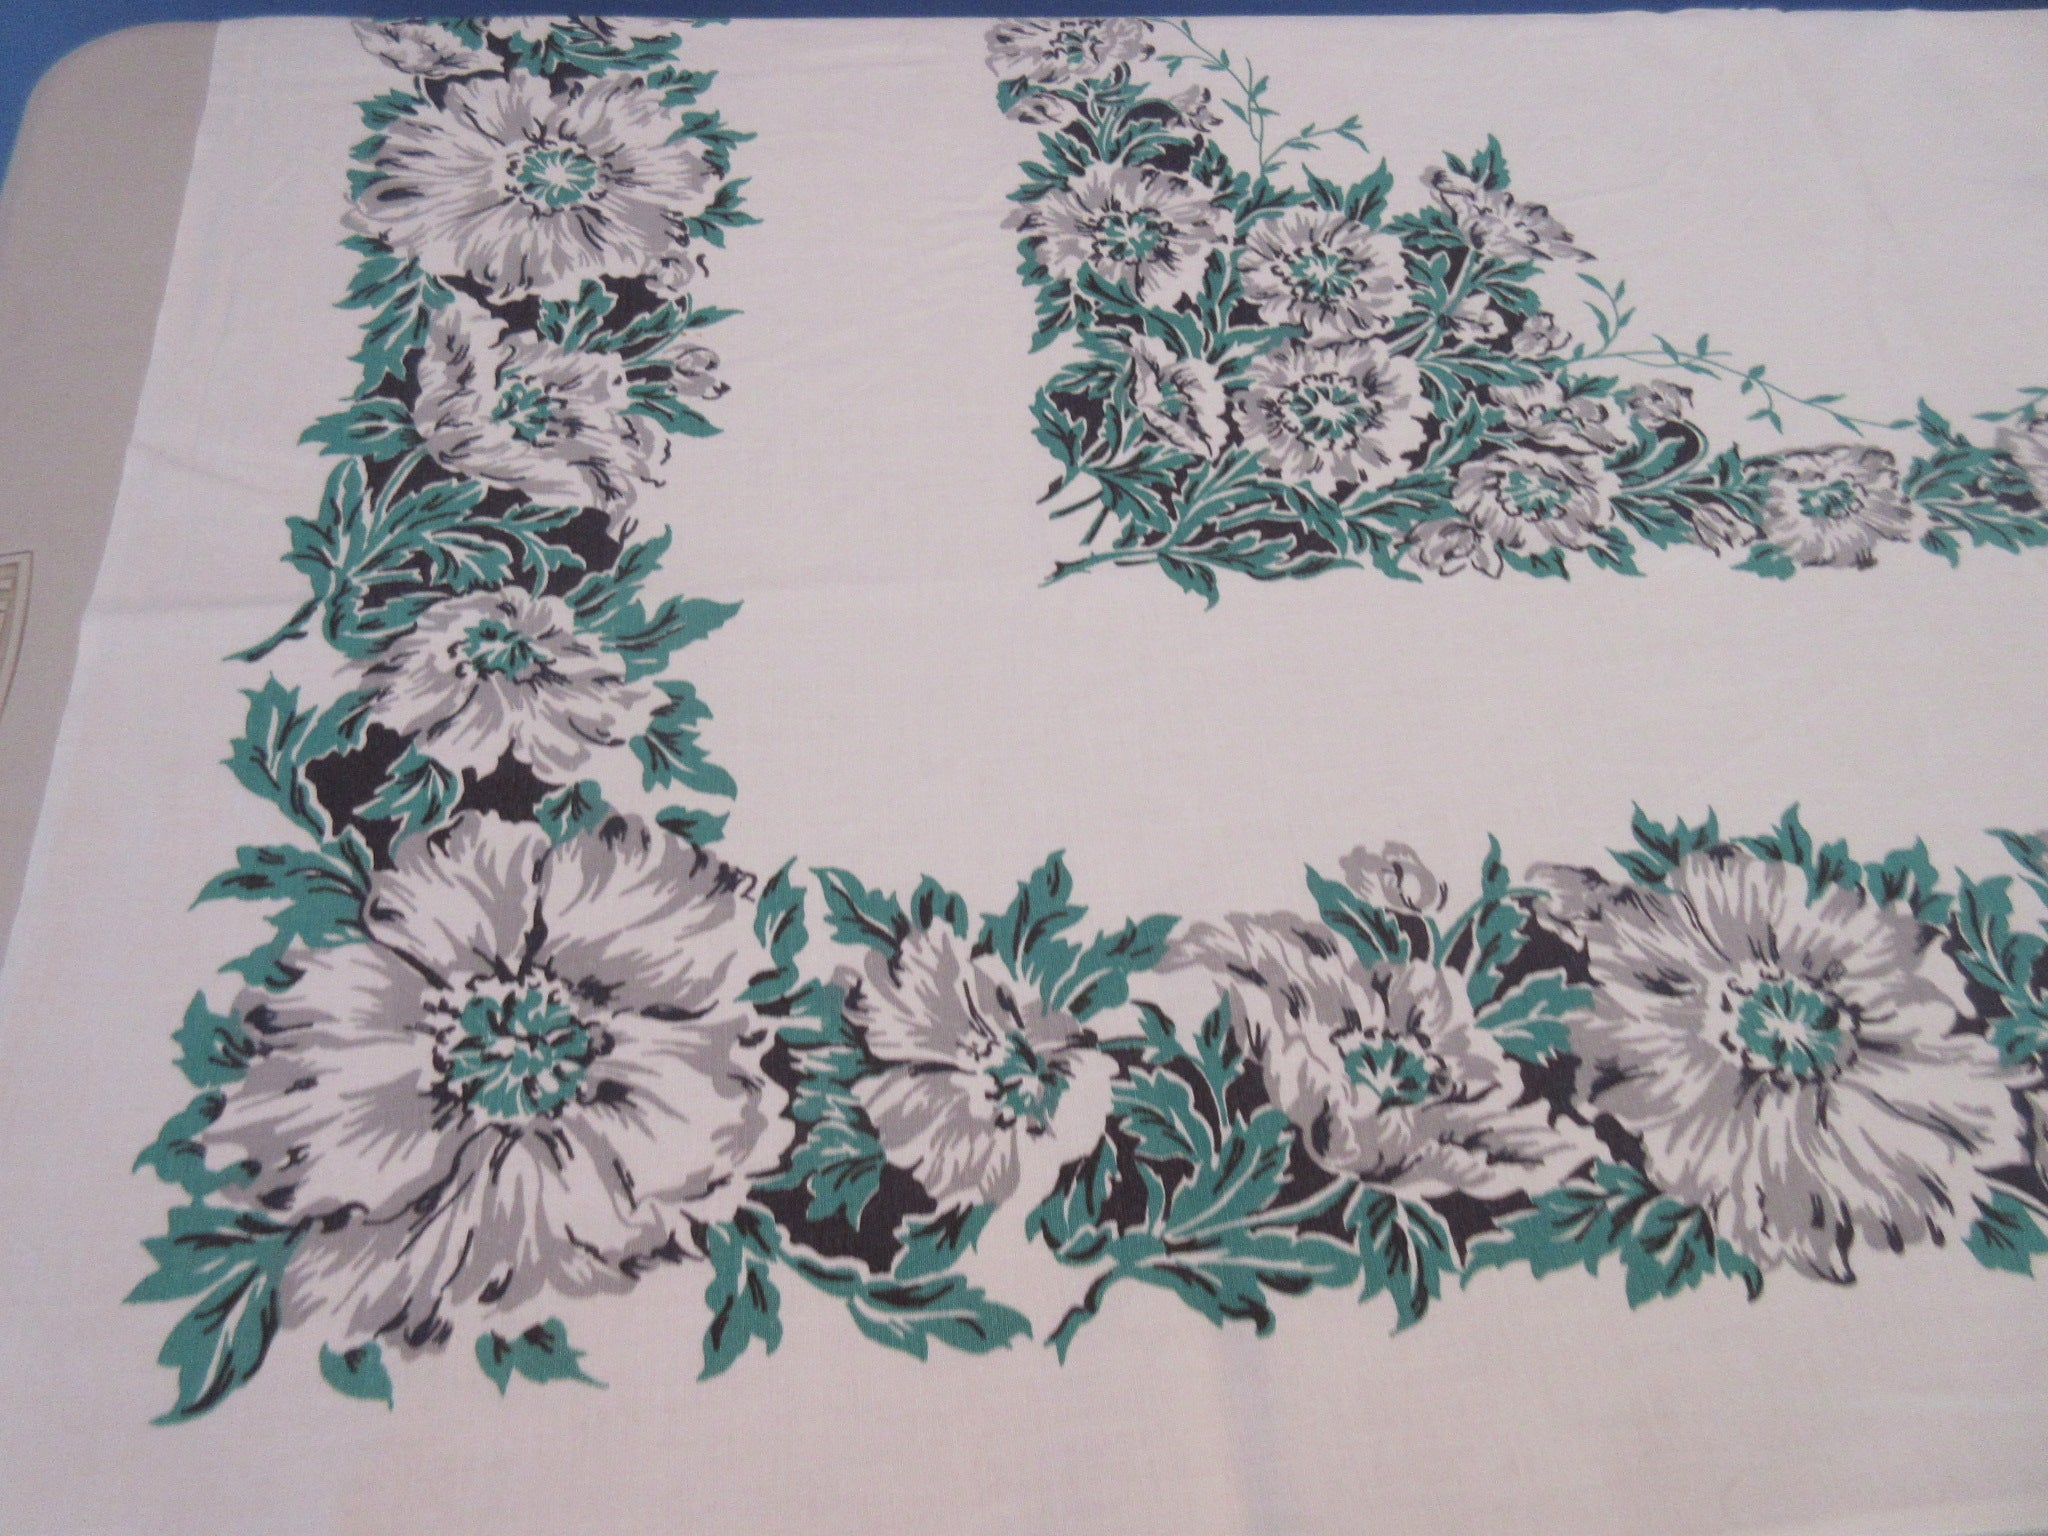 Grey Green Poppies Sheeting Floral Vintage Printed Tablecloth (50 X 48)